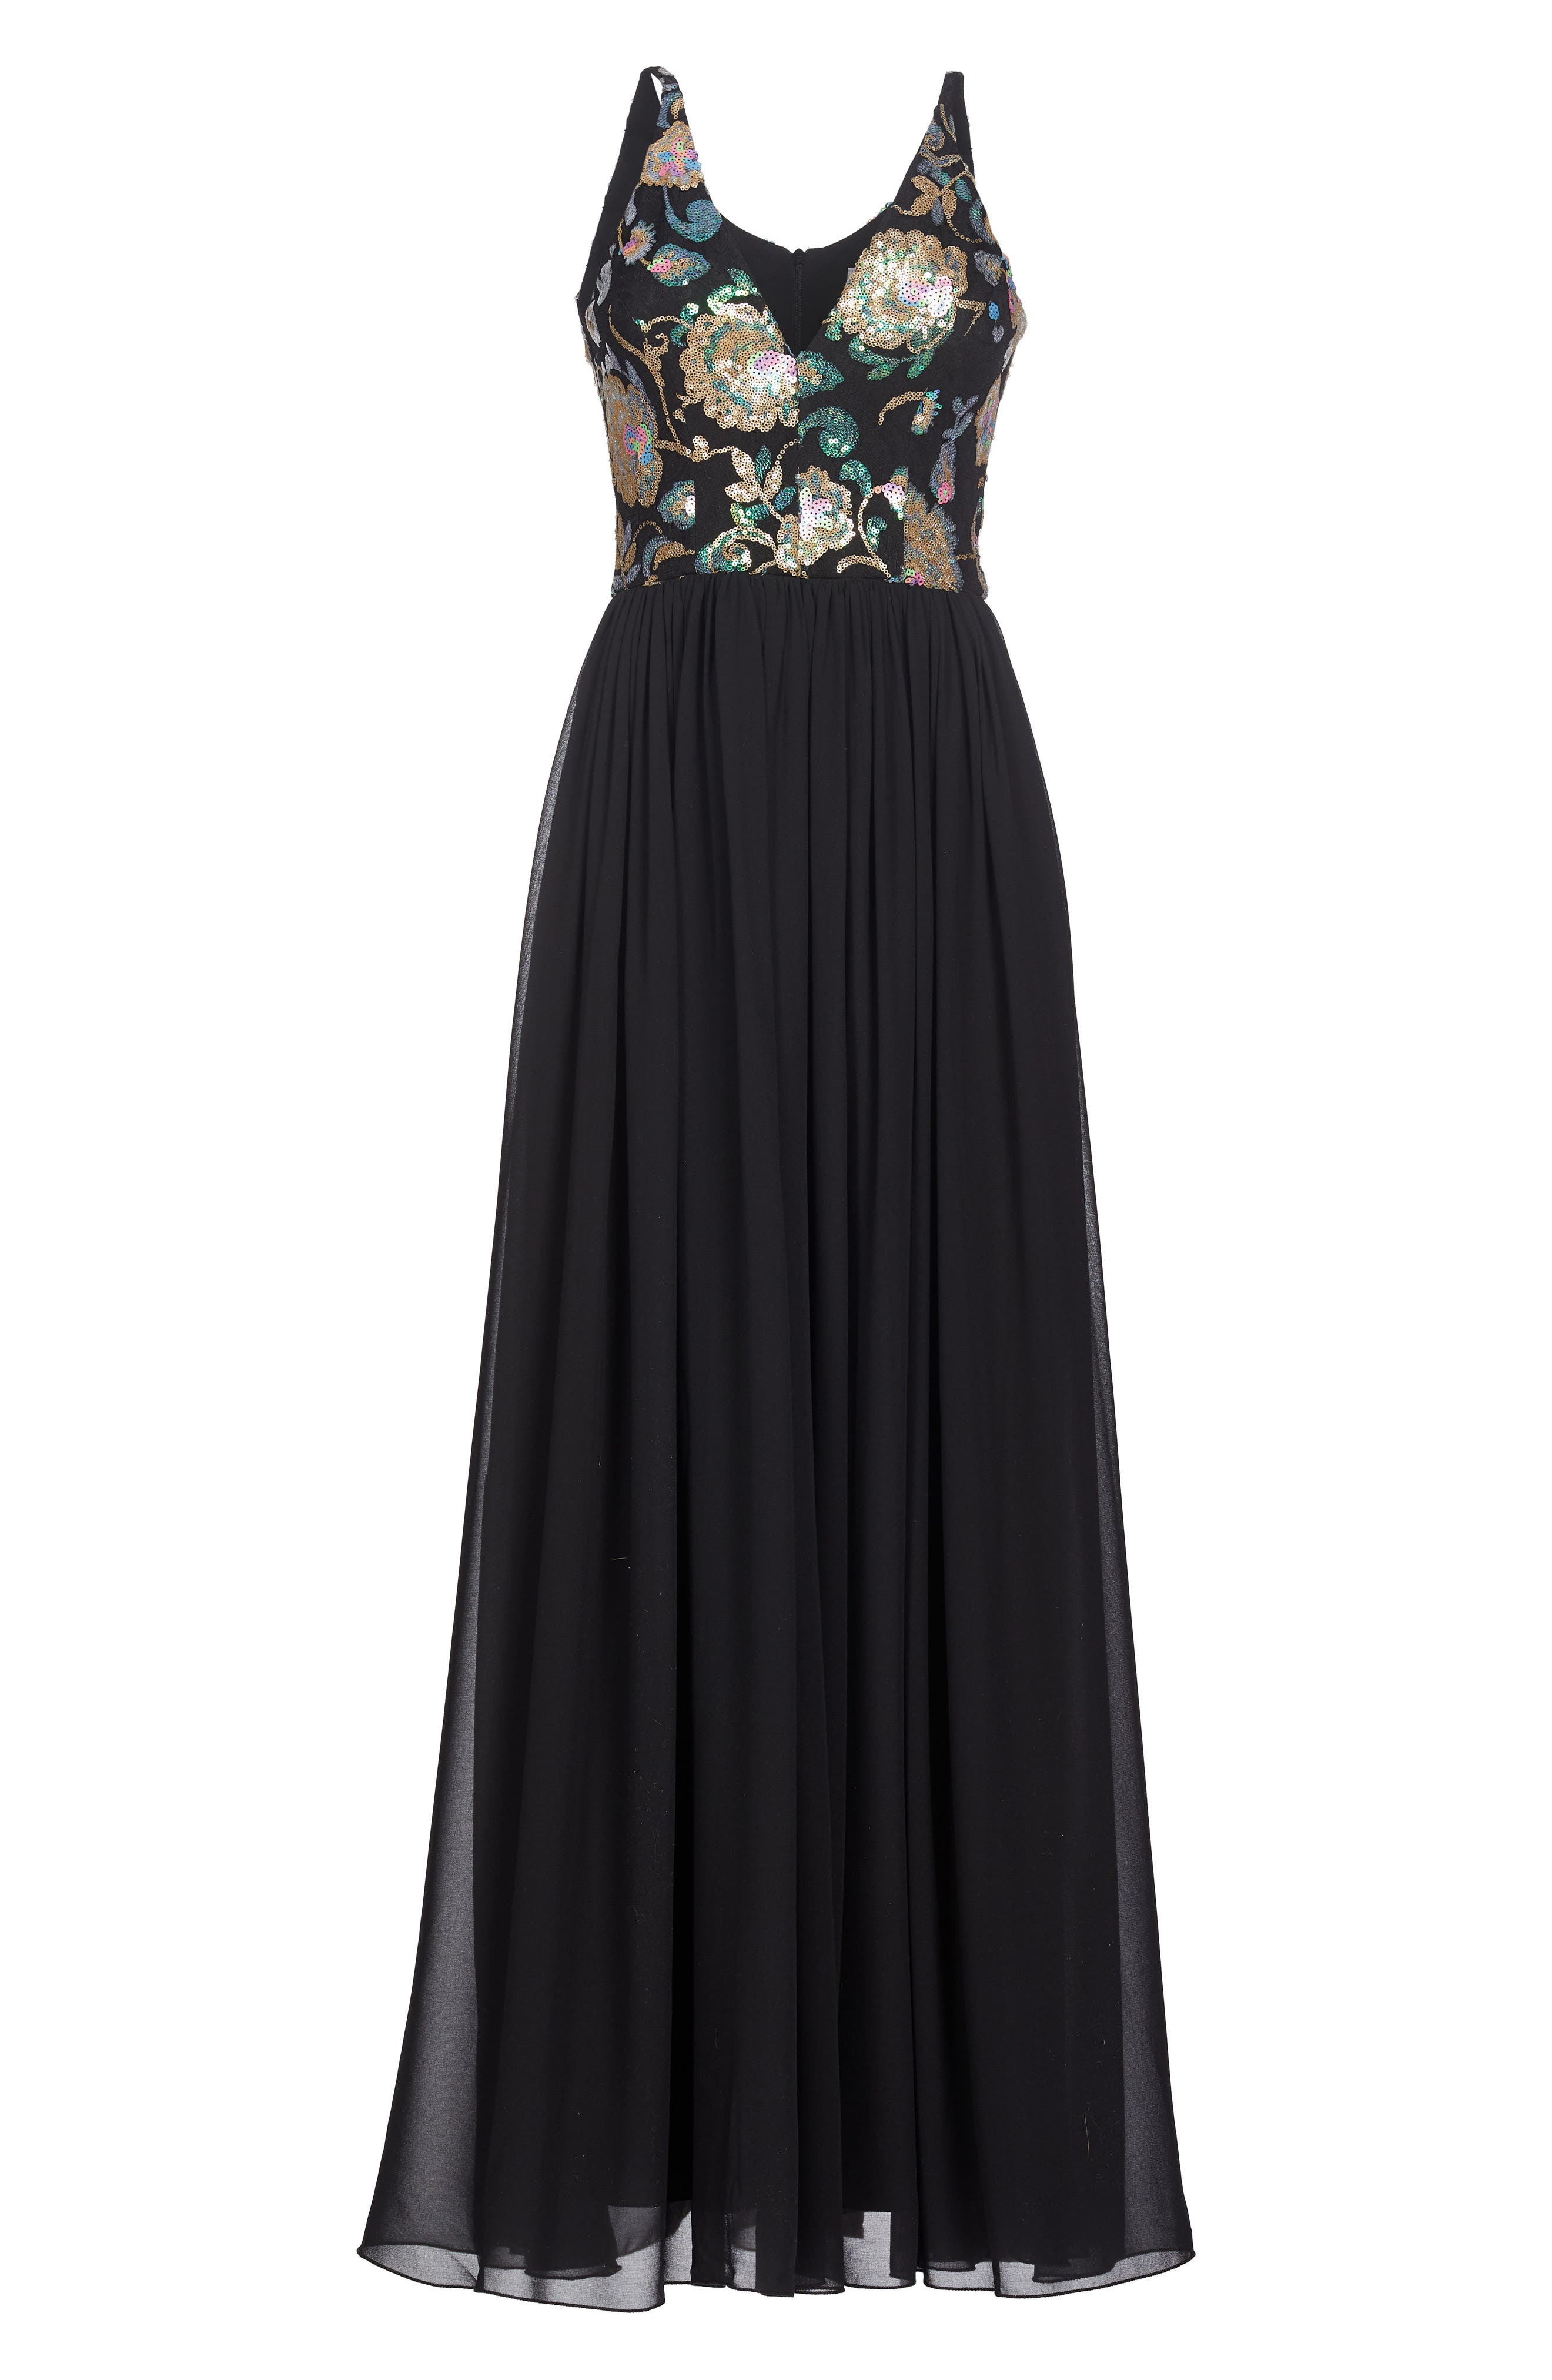 Adriana Sequin Bodice Gown,                             Alternate thumbnail 5, color,                             Black/ Iridescent Floral